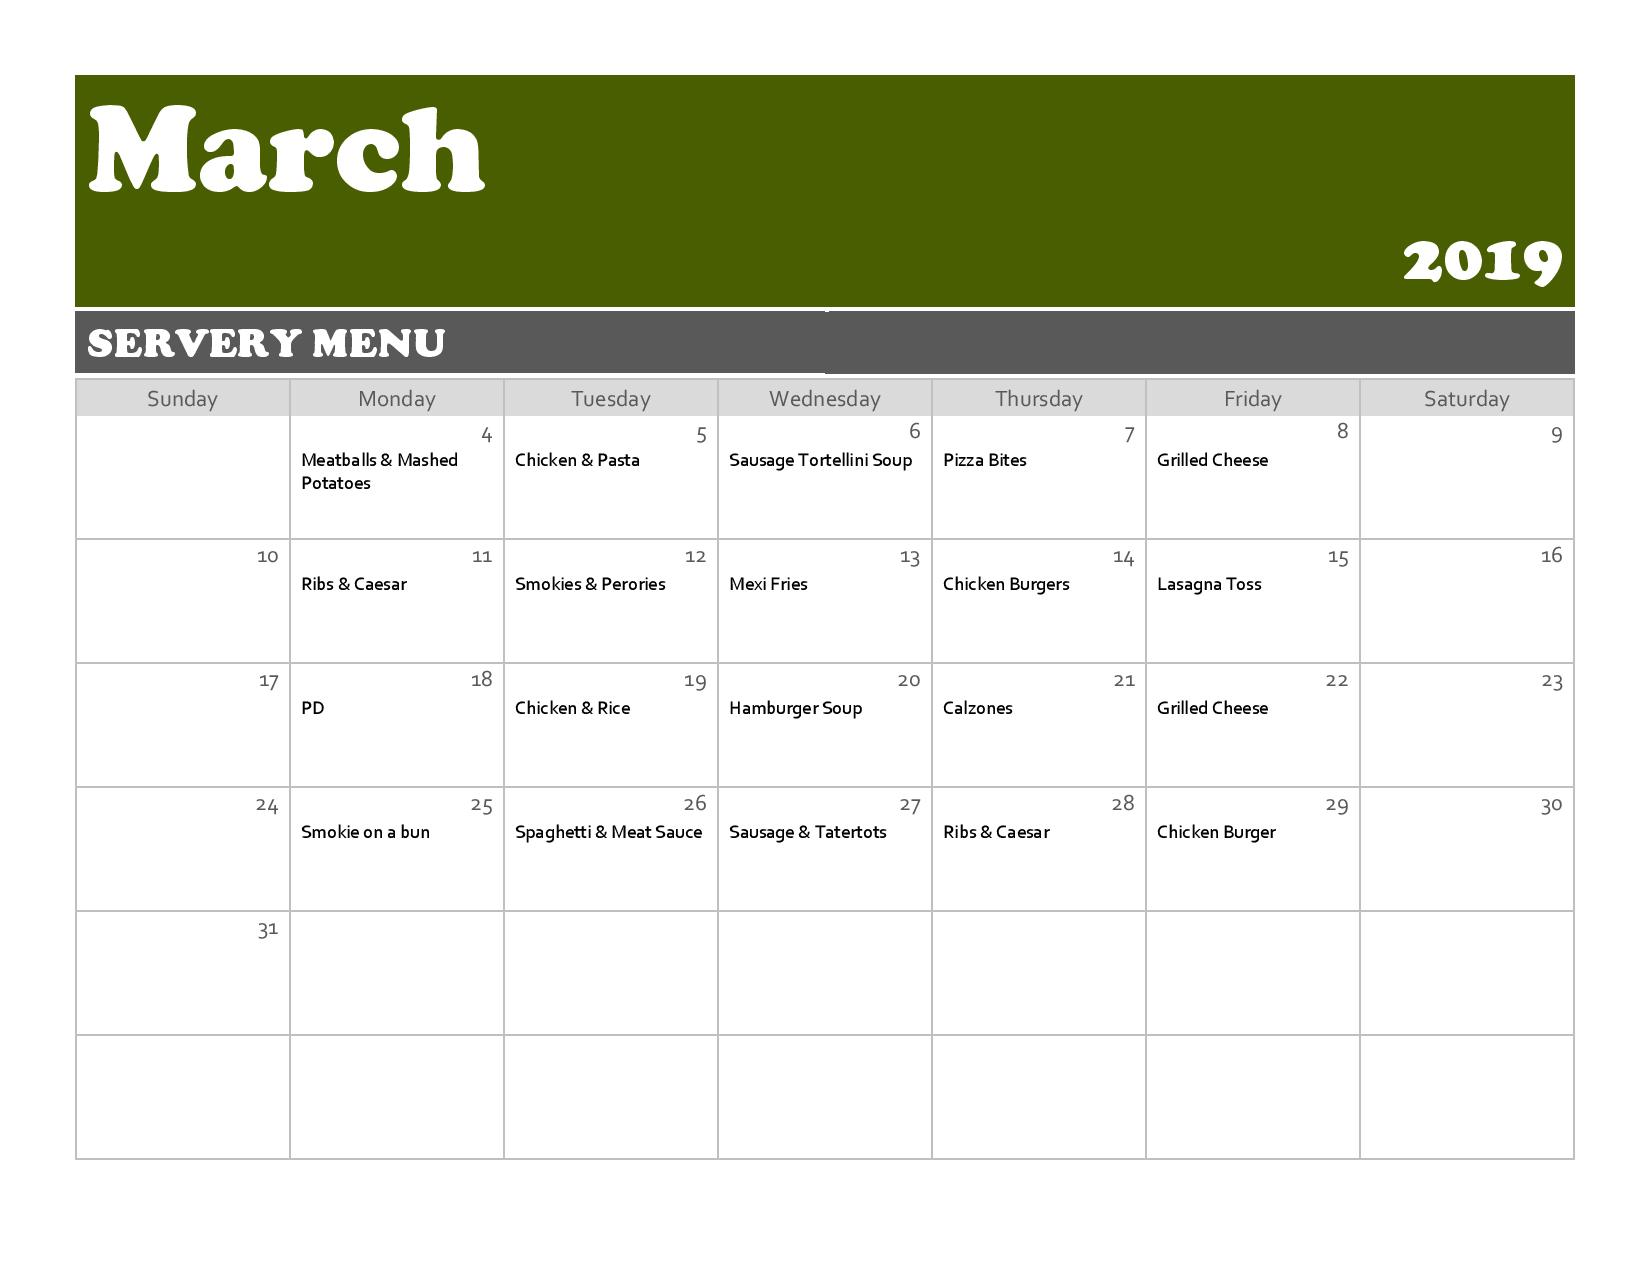 March Servery